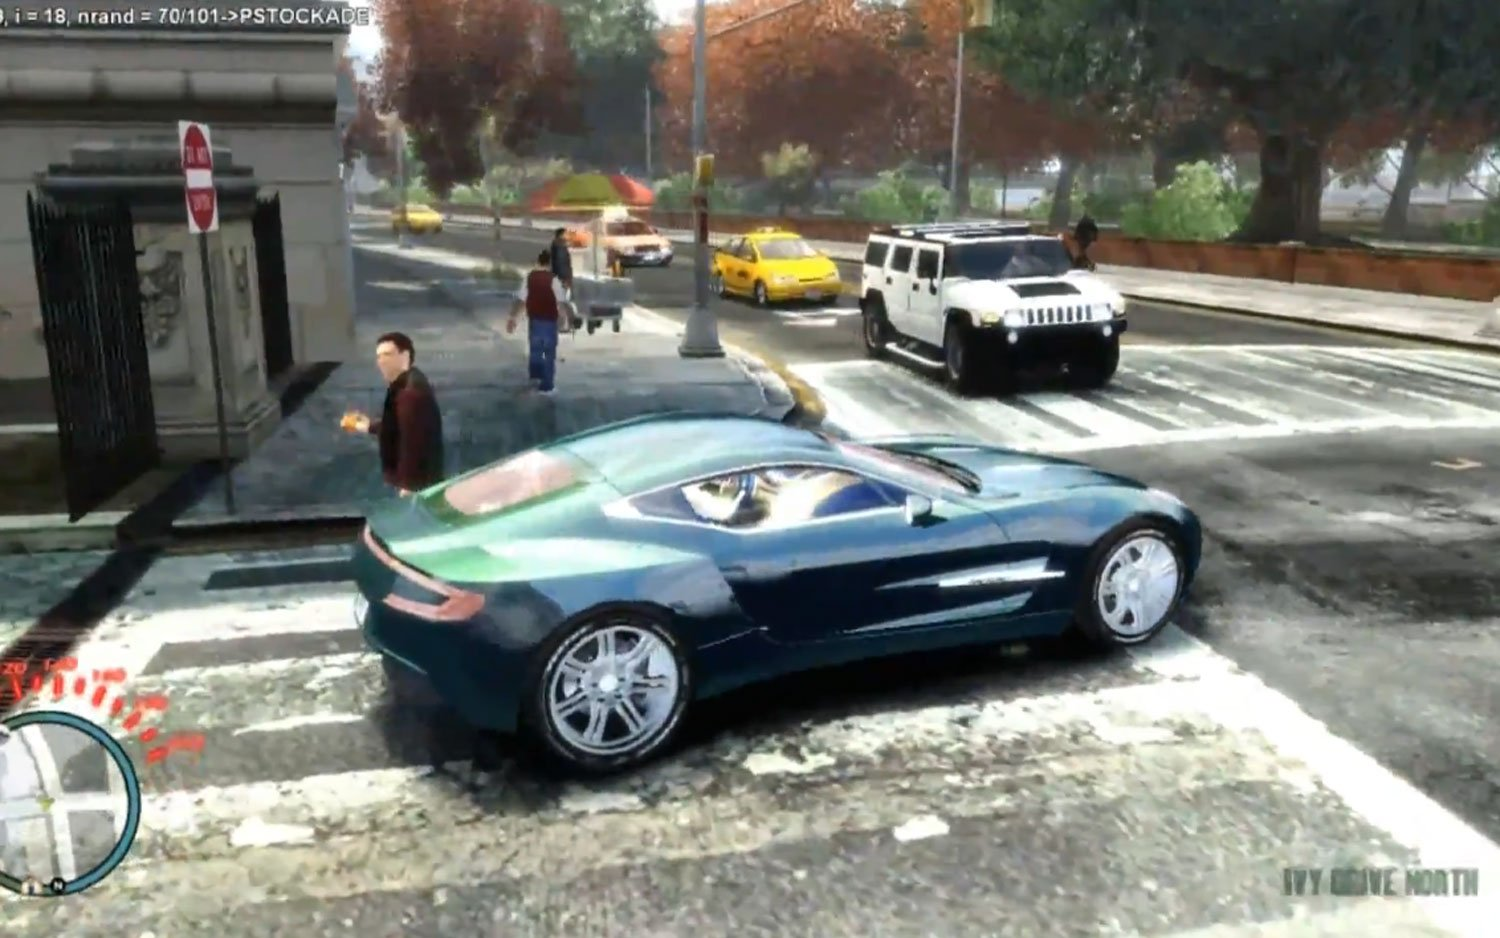 Grand Theft Auto GTA V Cars Res 1500x938 1500x938